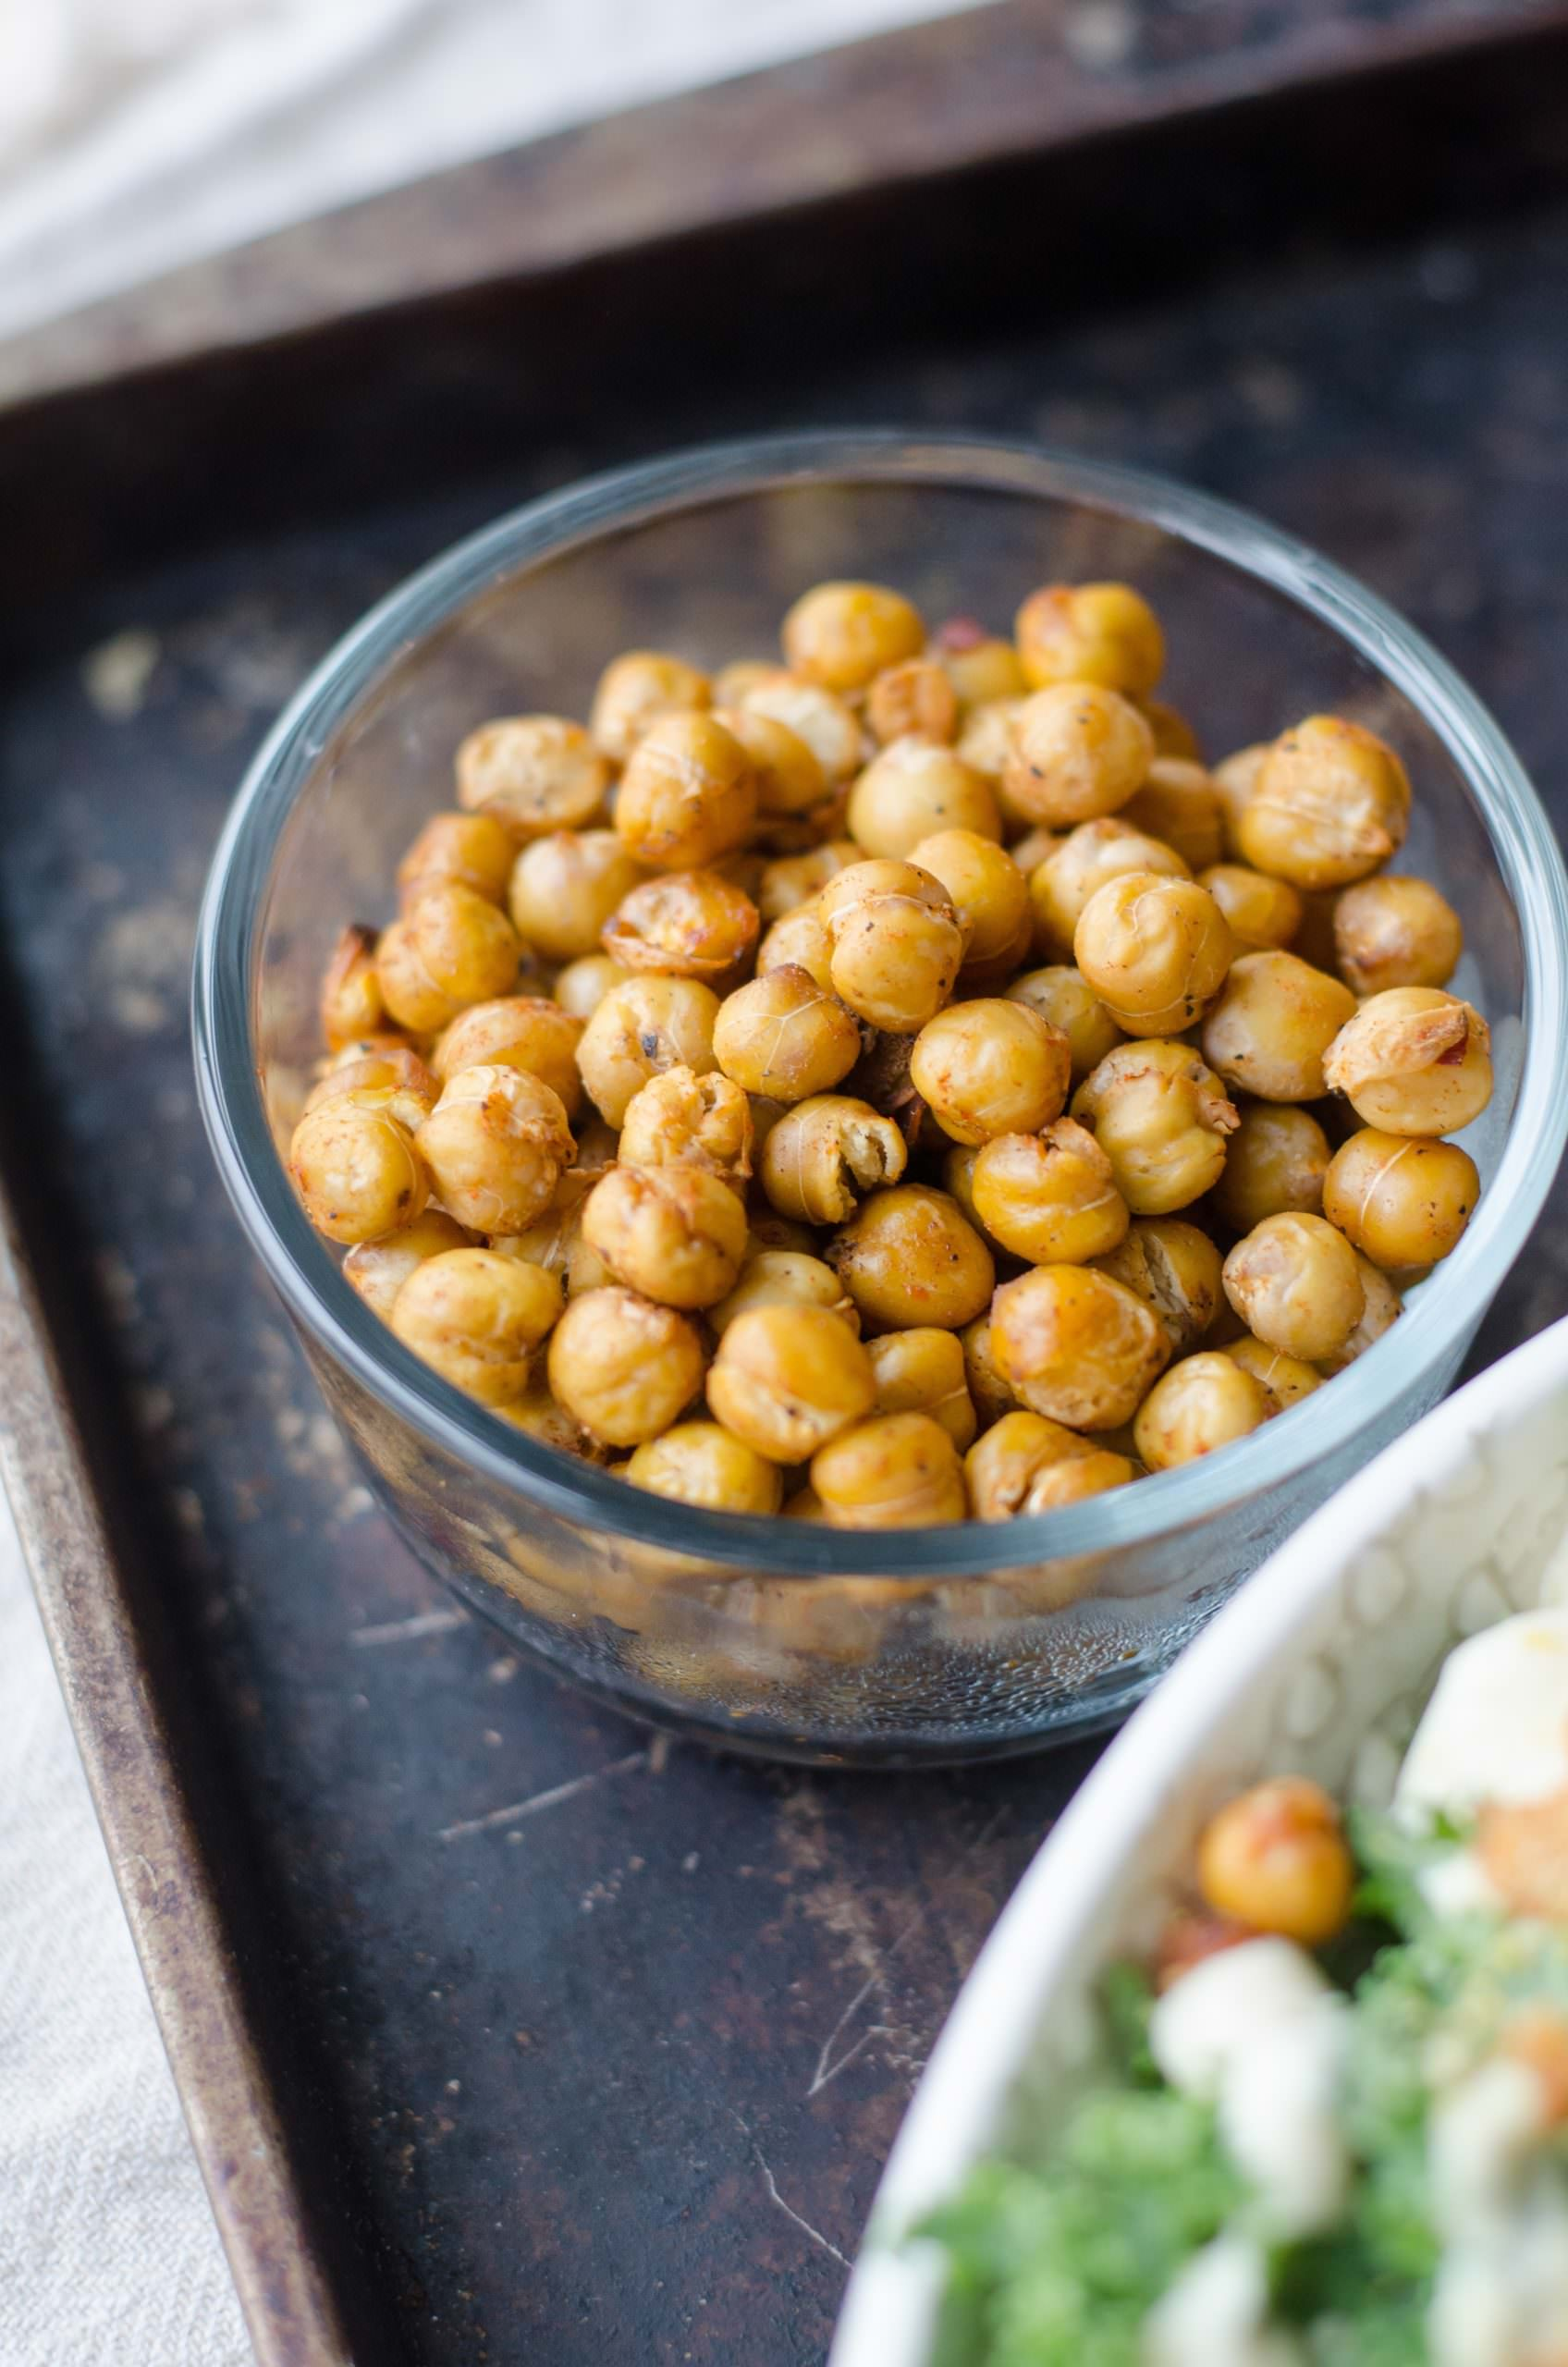 Ingredient of the month: The Versatile Plant-based protein